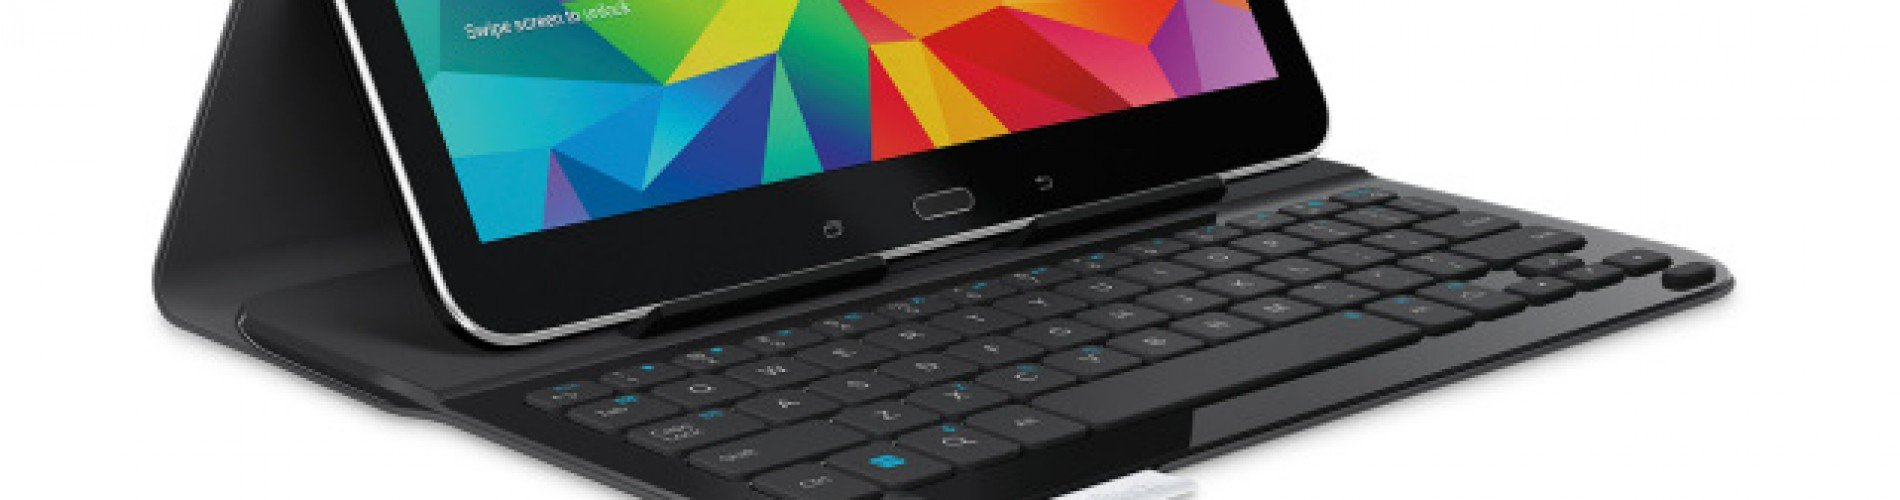 Samsung Galaxy Note Pro 12.2 Android 5.0.2 update locks out competitor keyboards